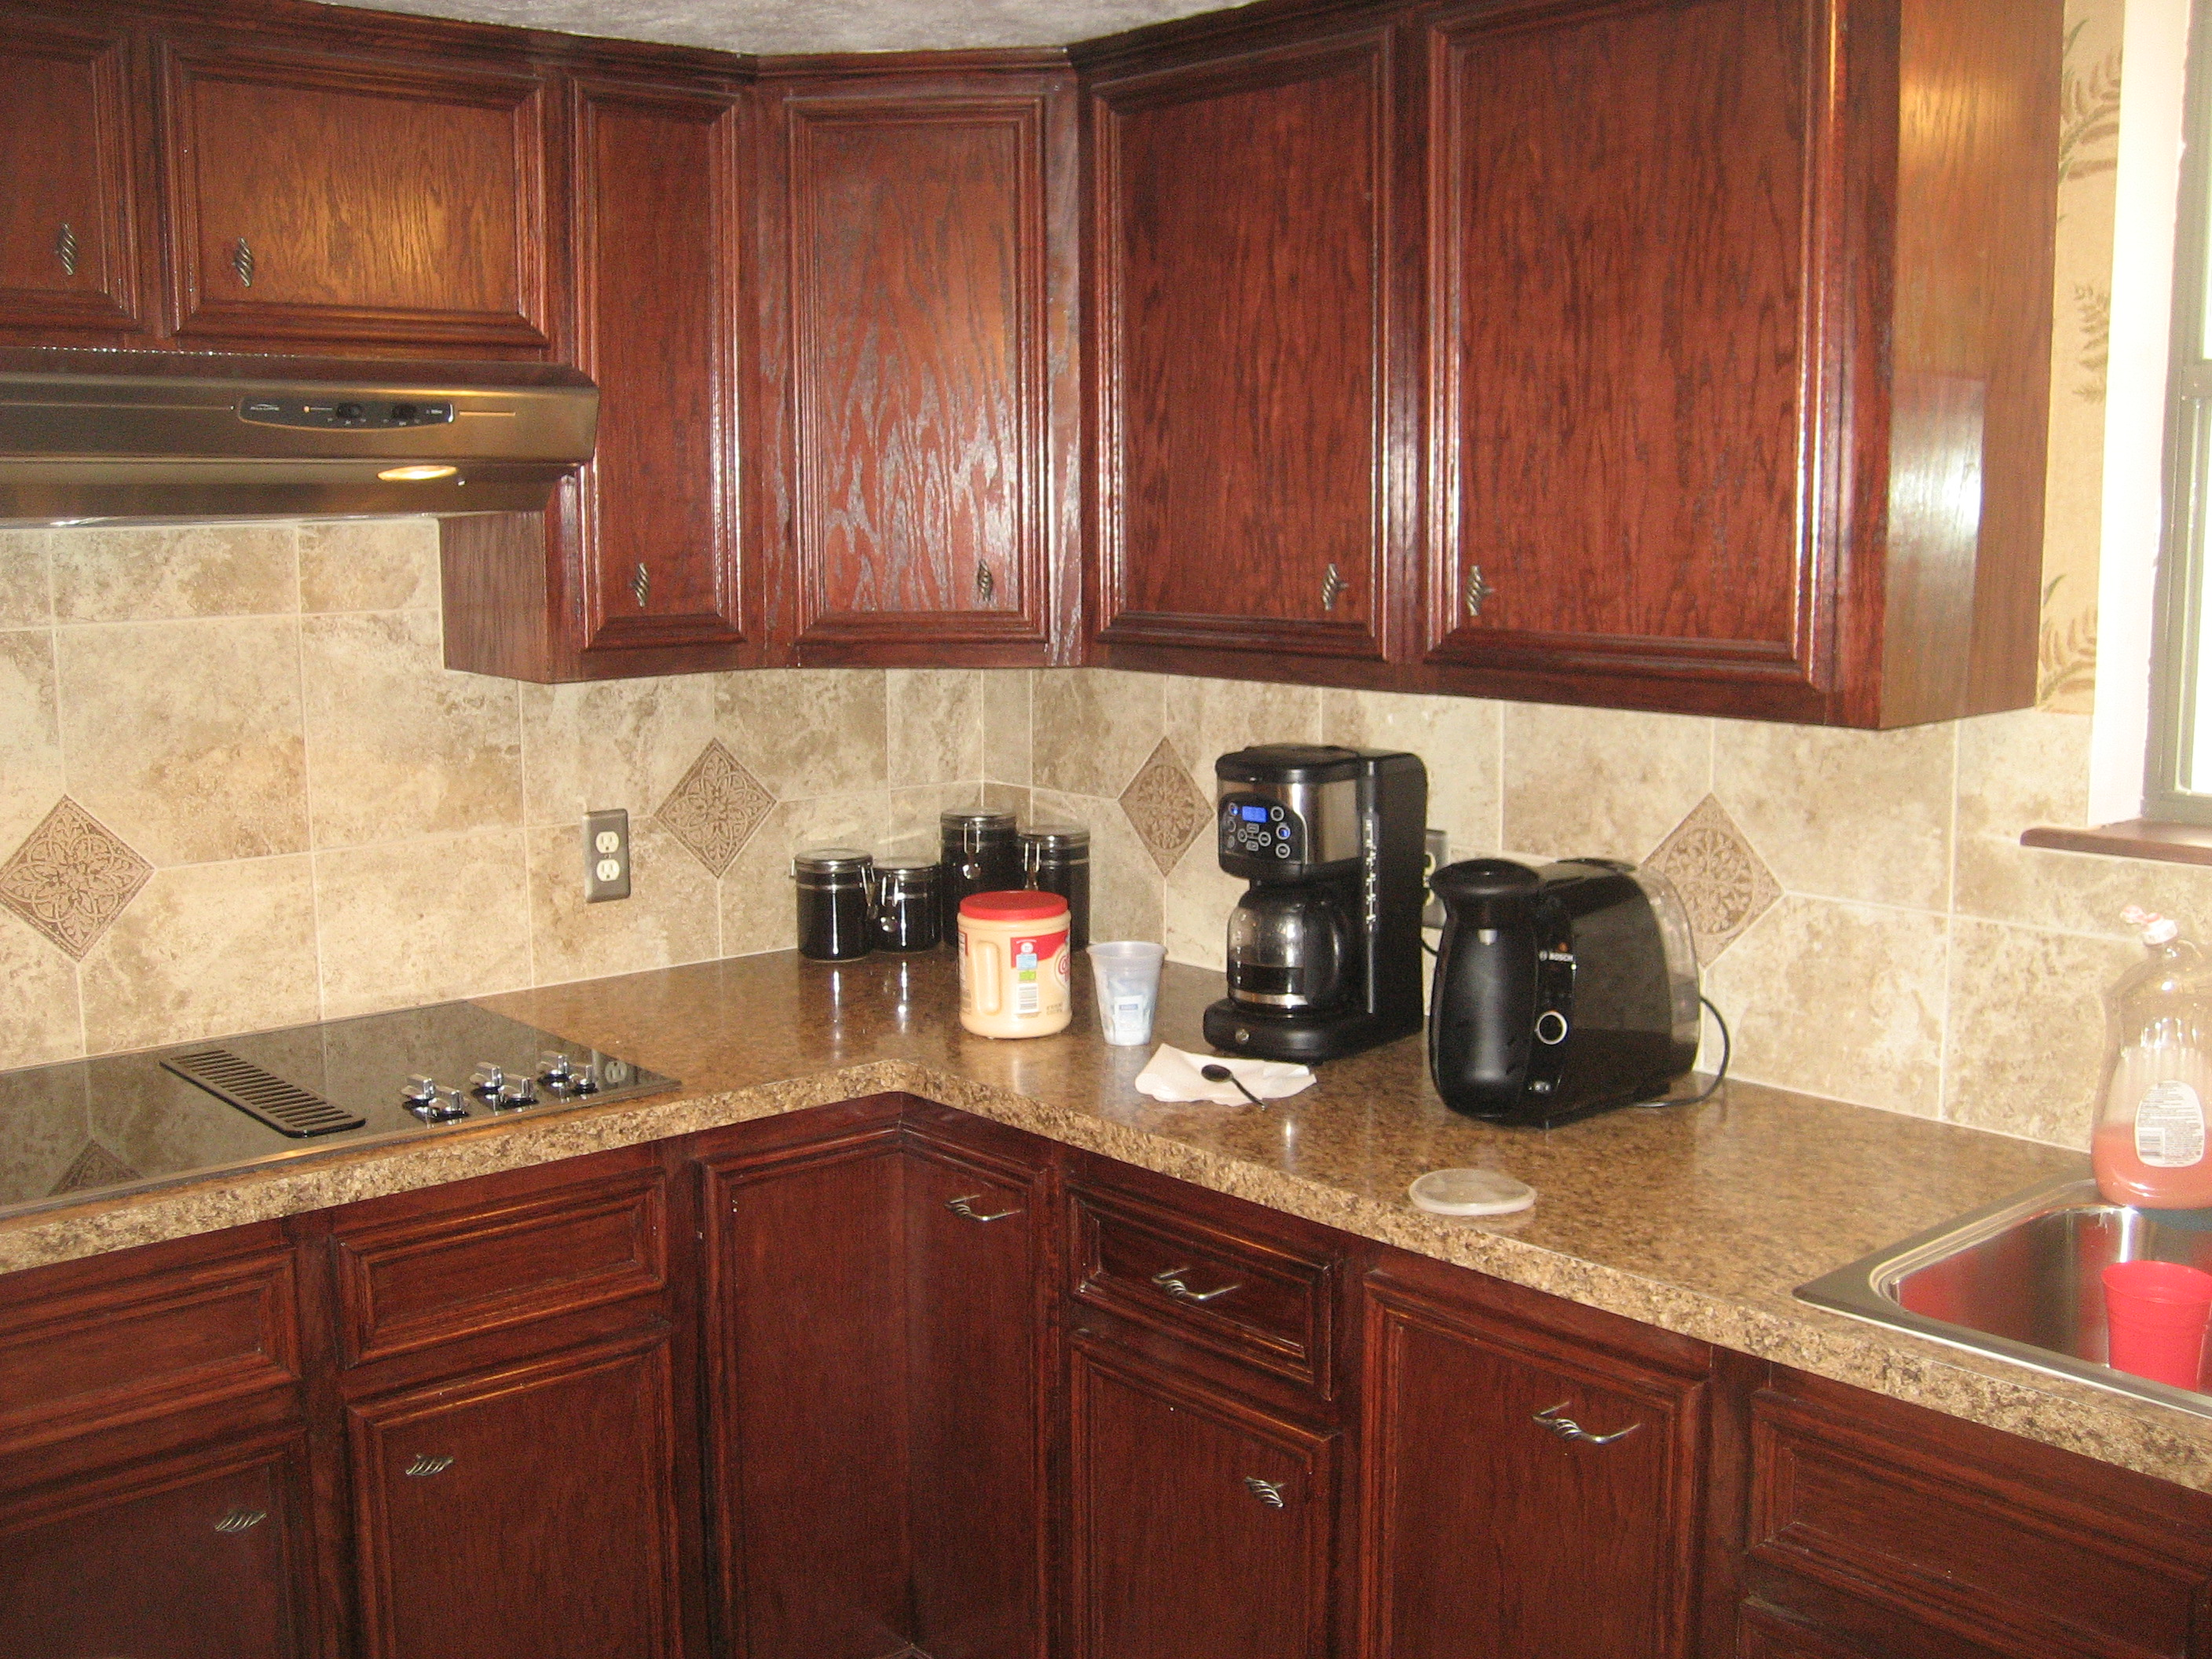 md damage company restoration countertop home after water fire kitchen westminster maryland services